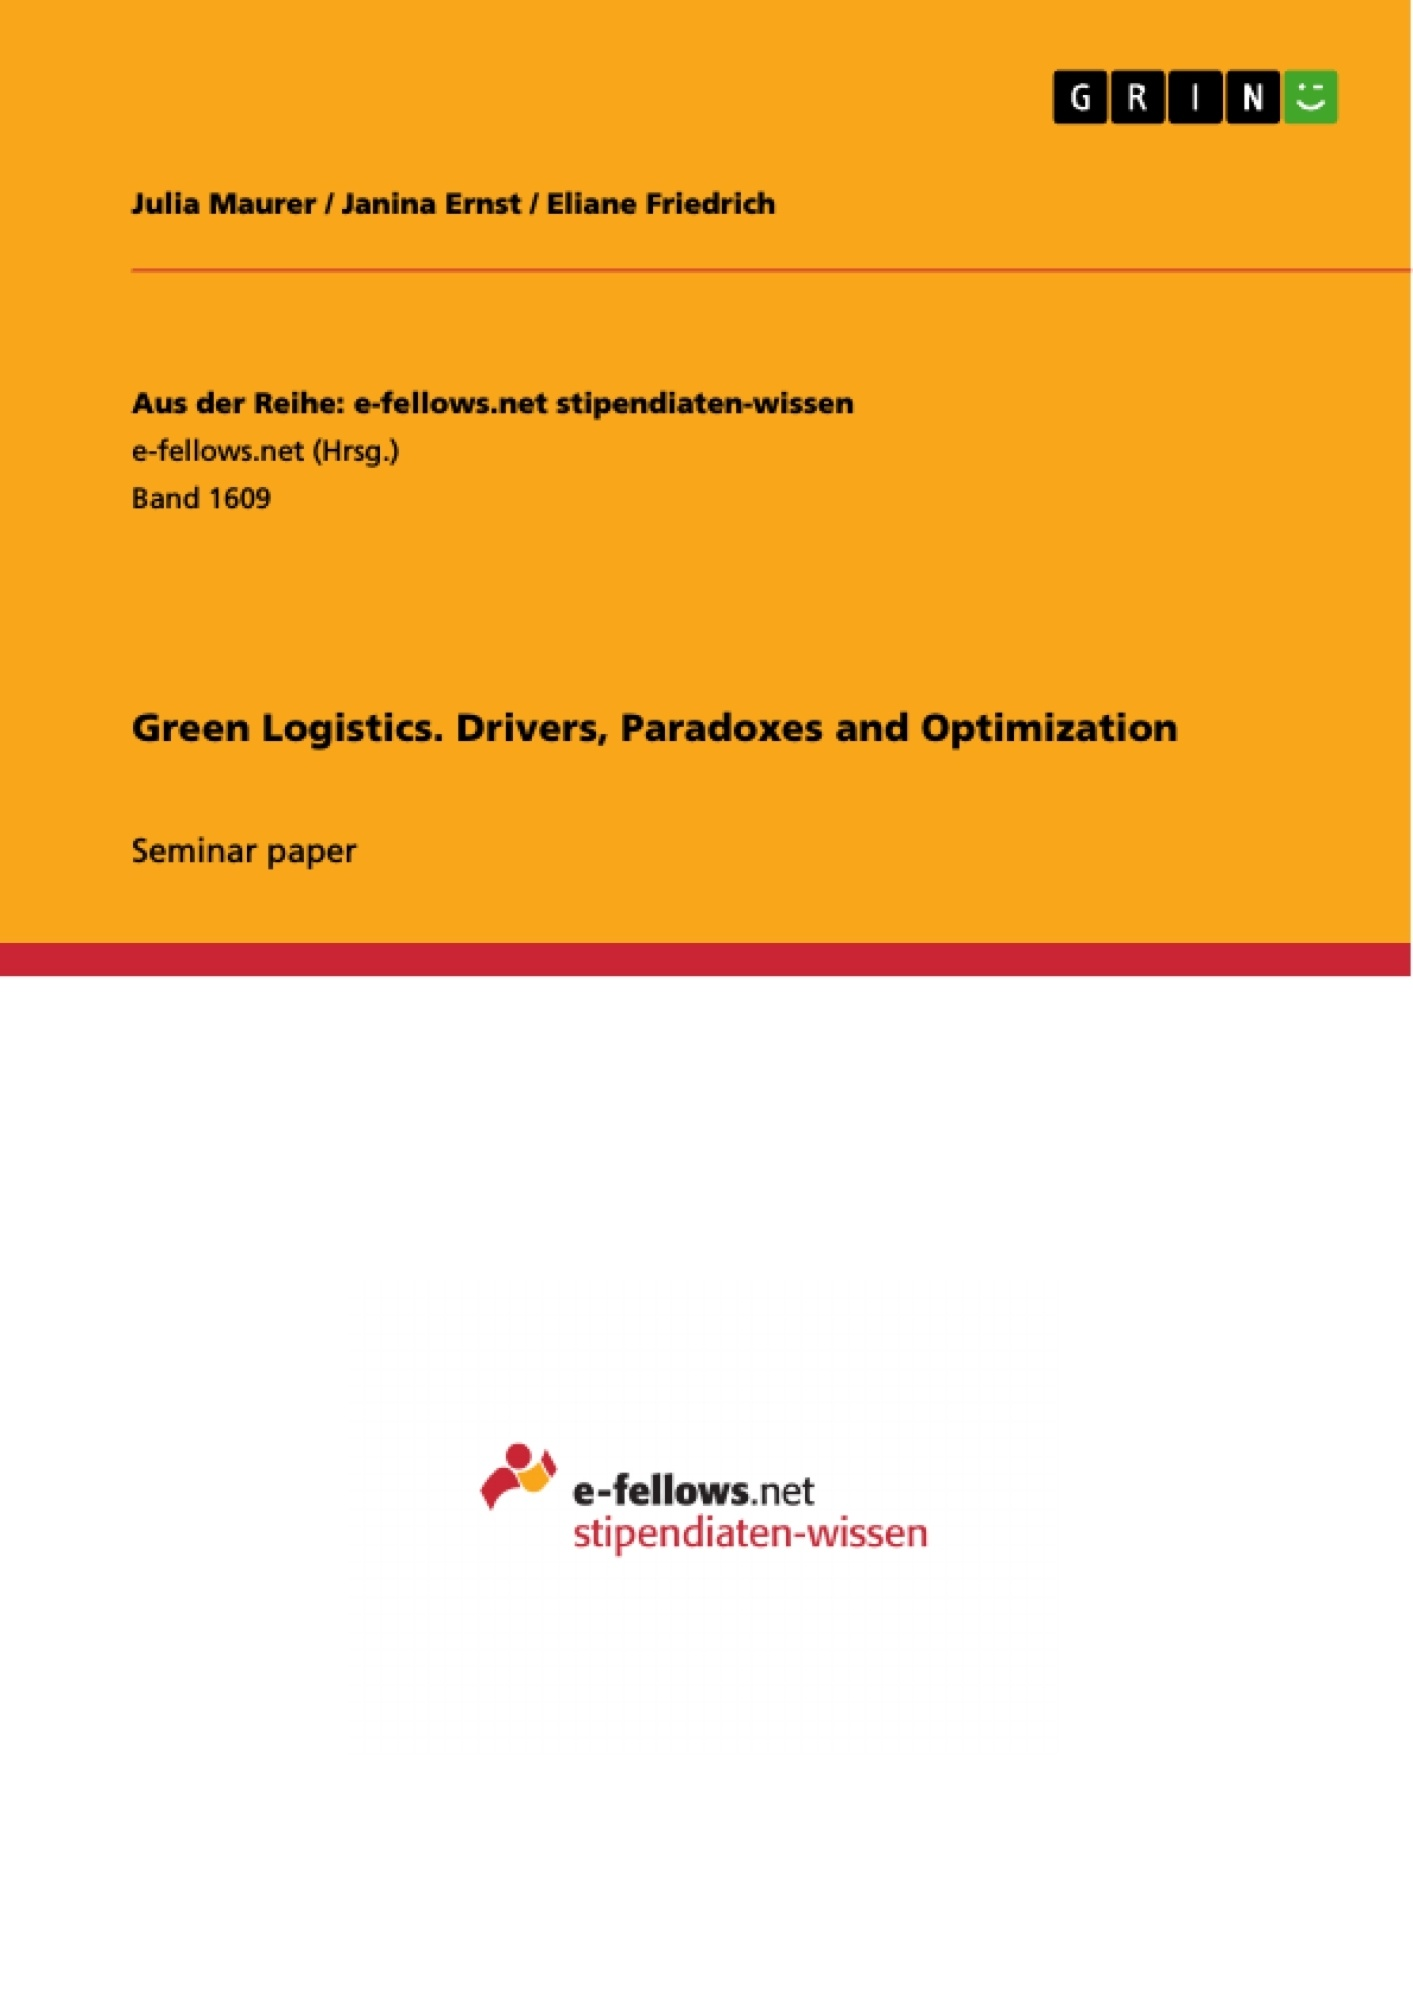 37 Dissertation Topics on Logistics and Supply Chain Management